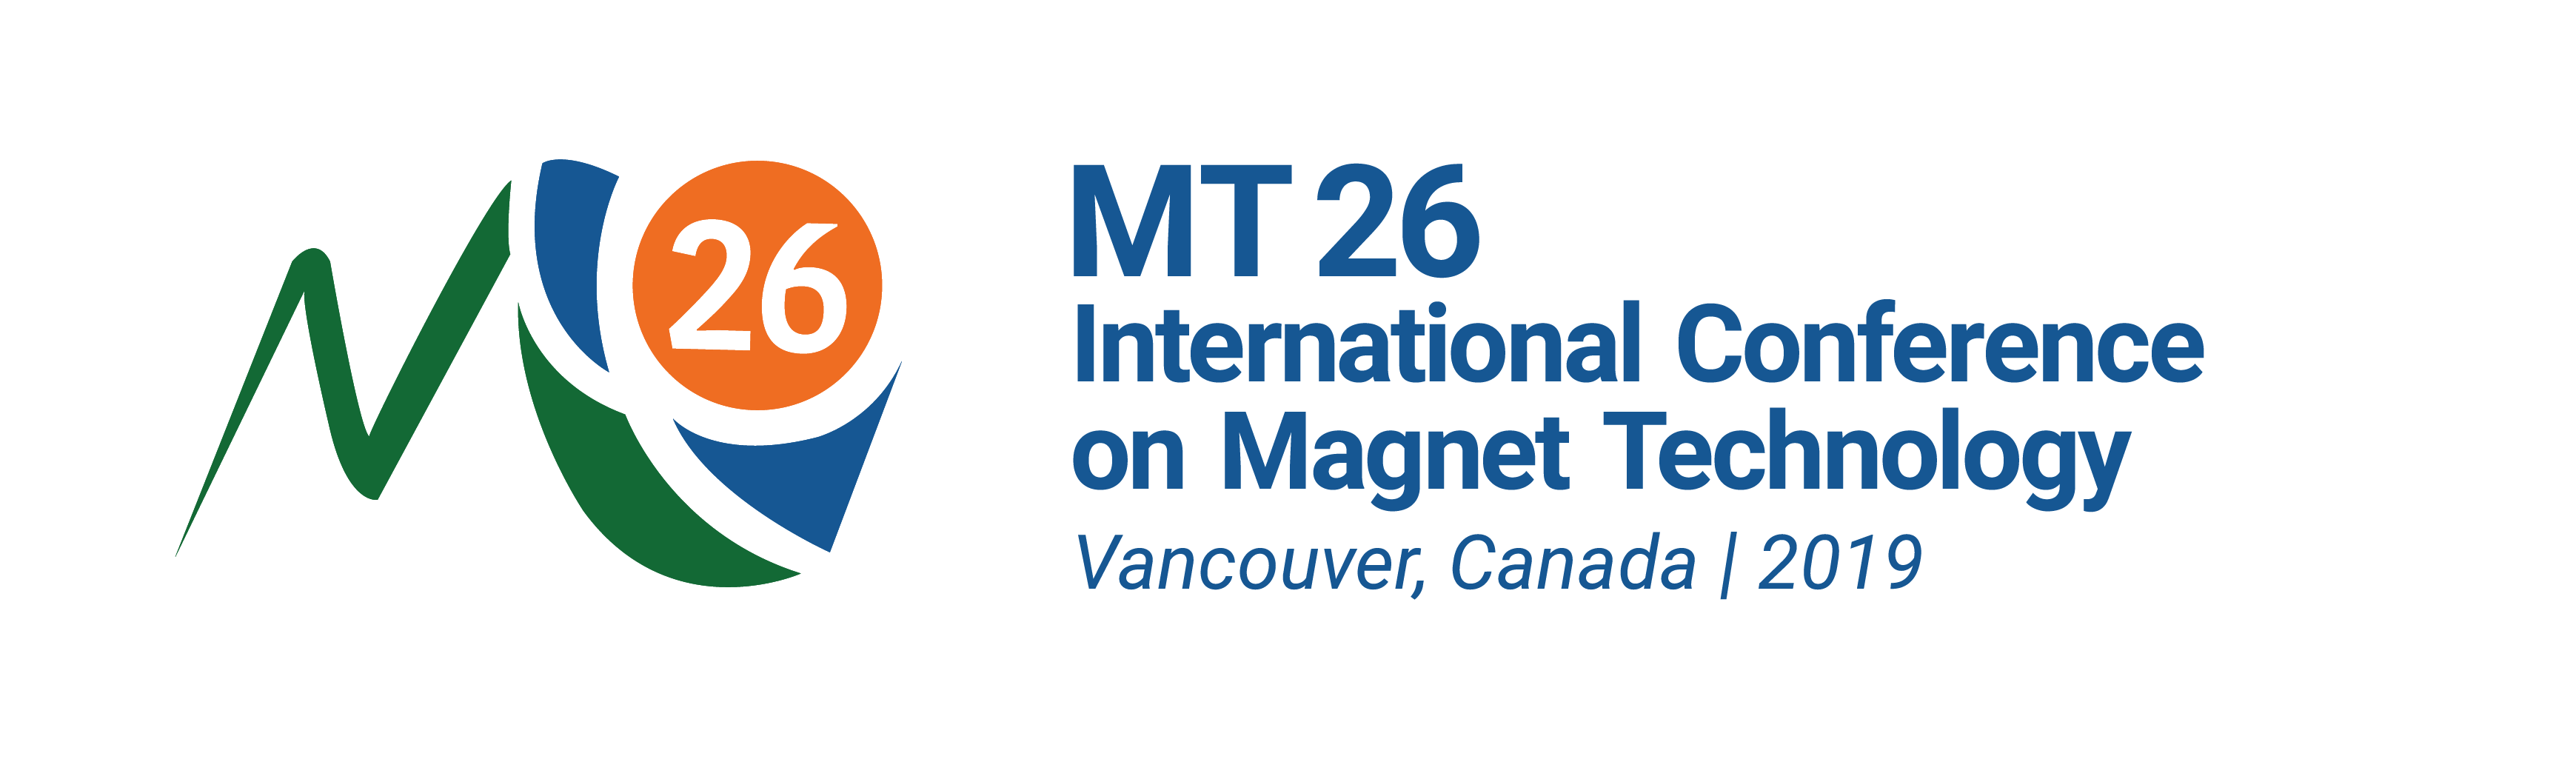 26th International Conference on Magnet Technology (MT26)